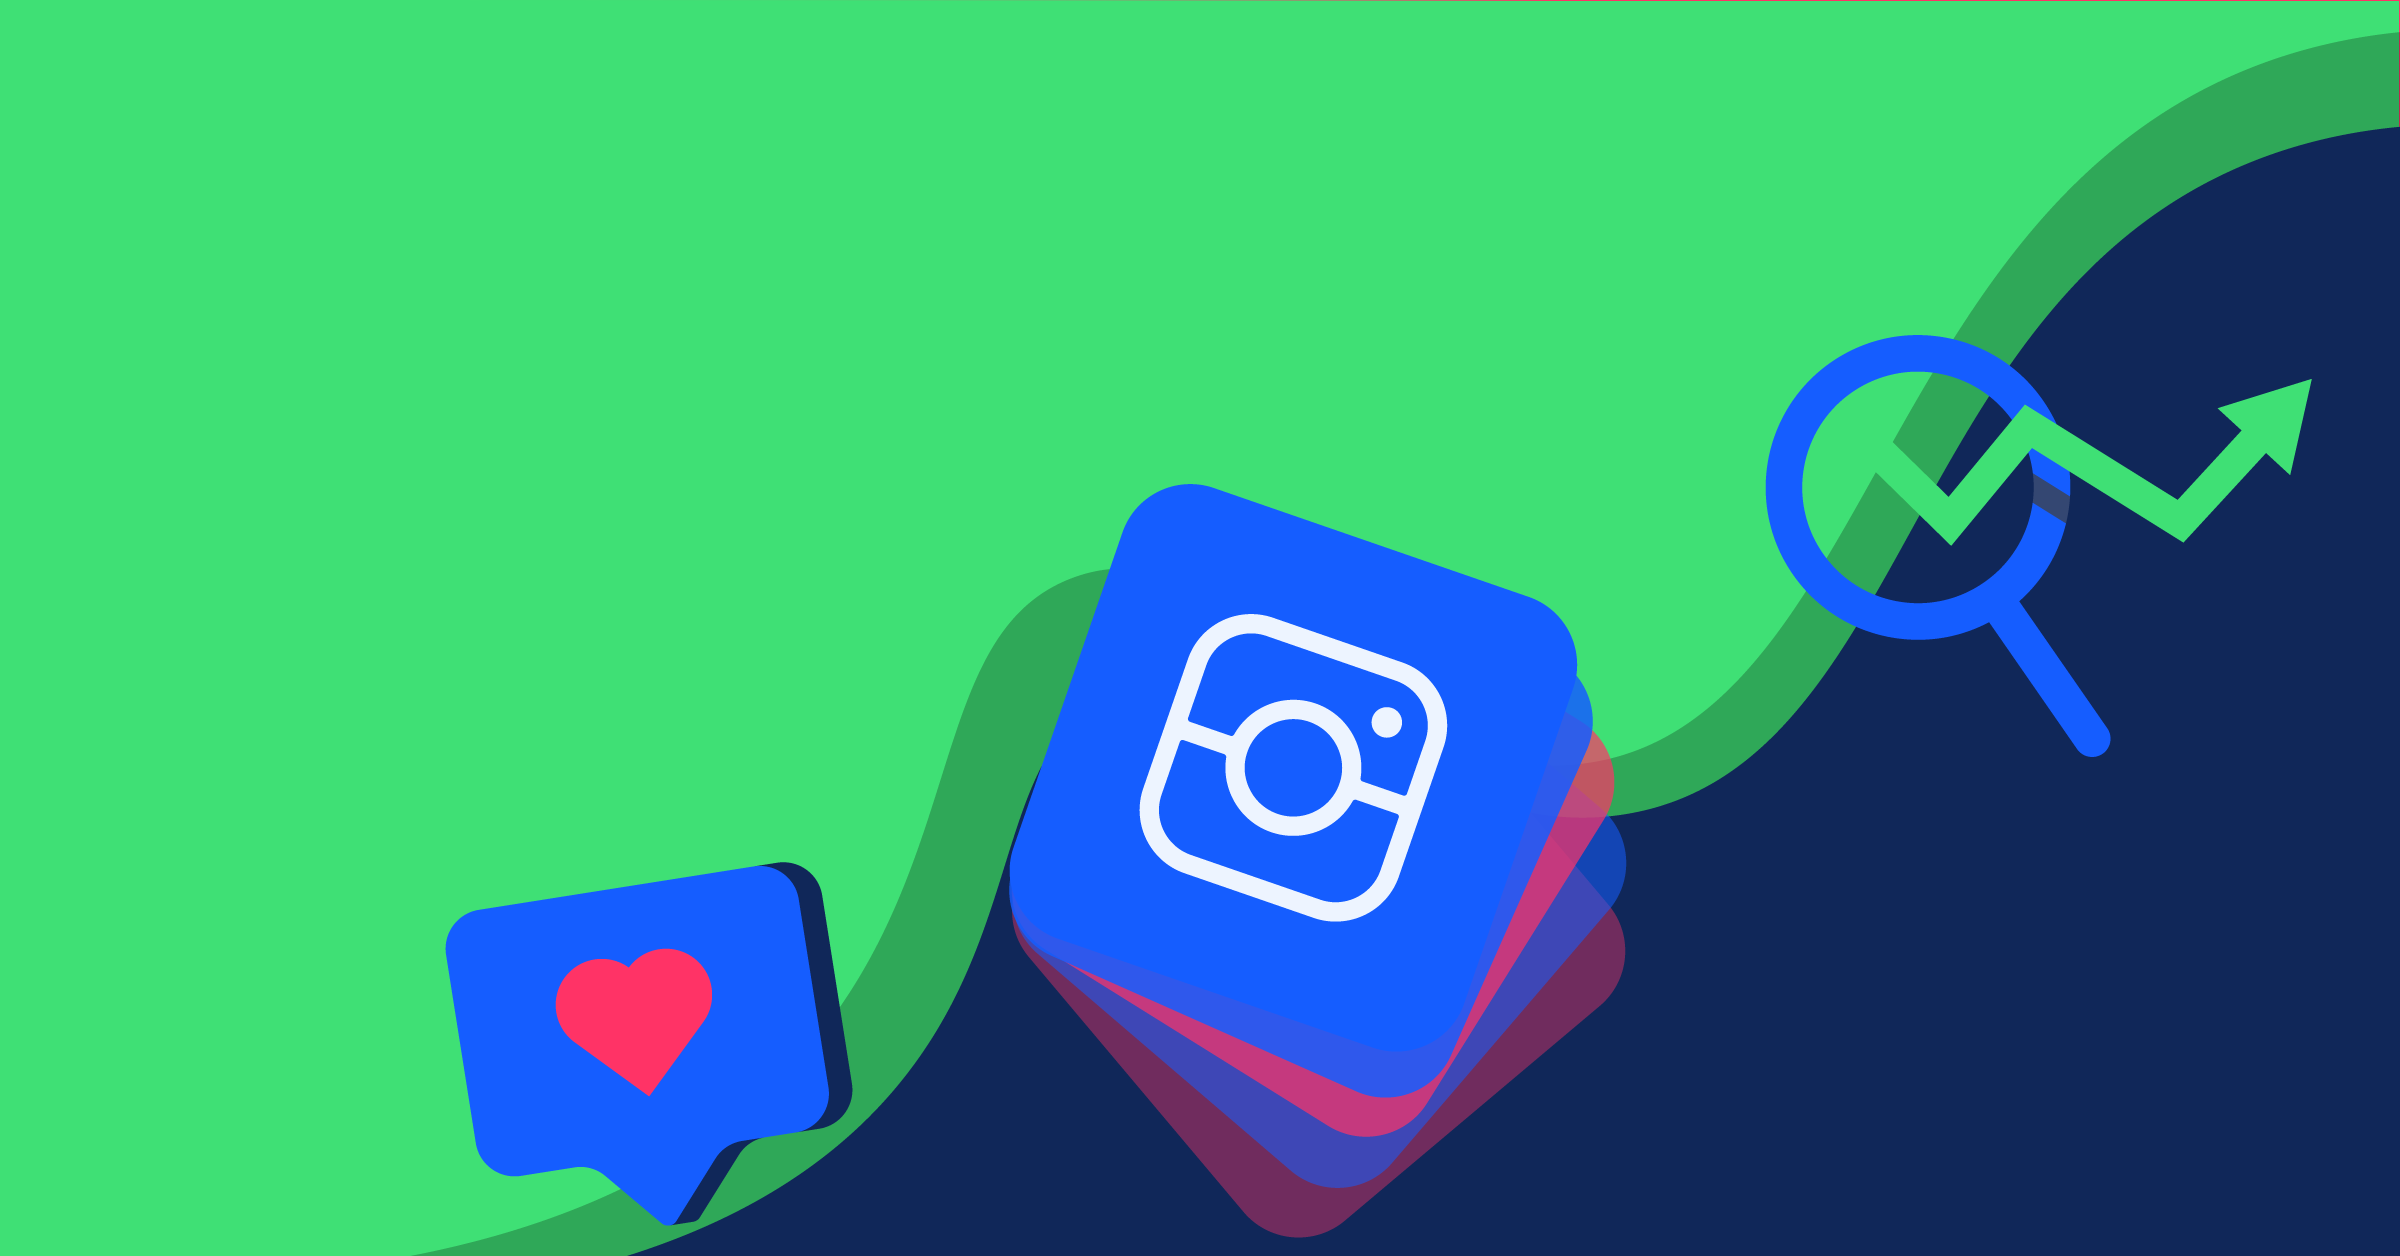 11 Instagram Marketing Technique Trends in 2021 (2/2)